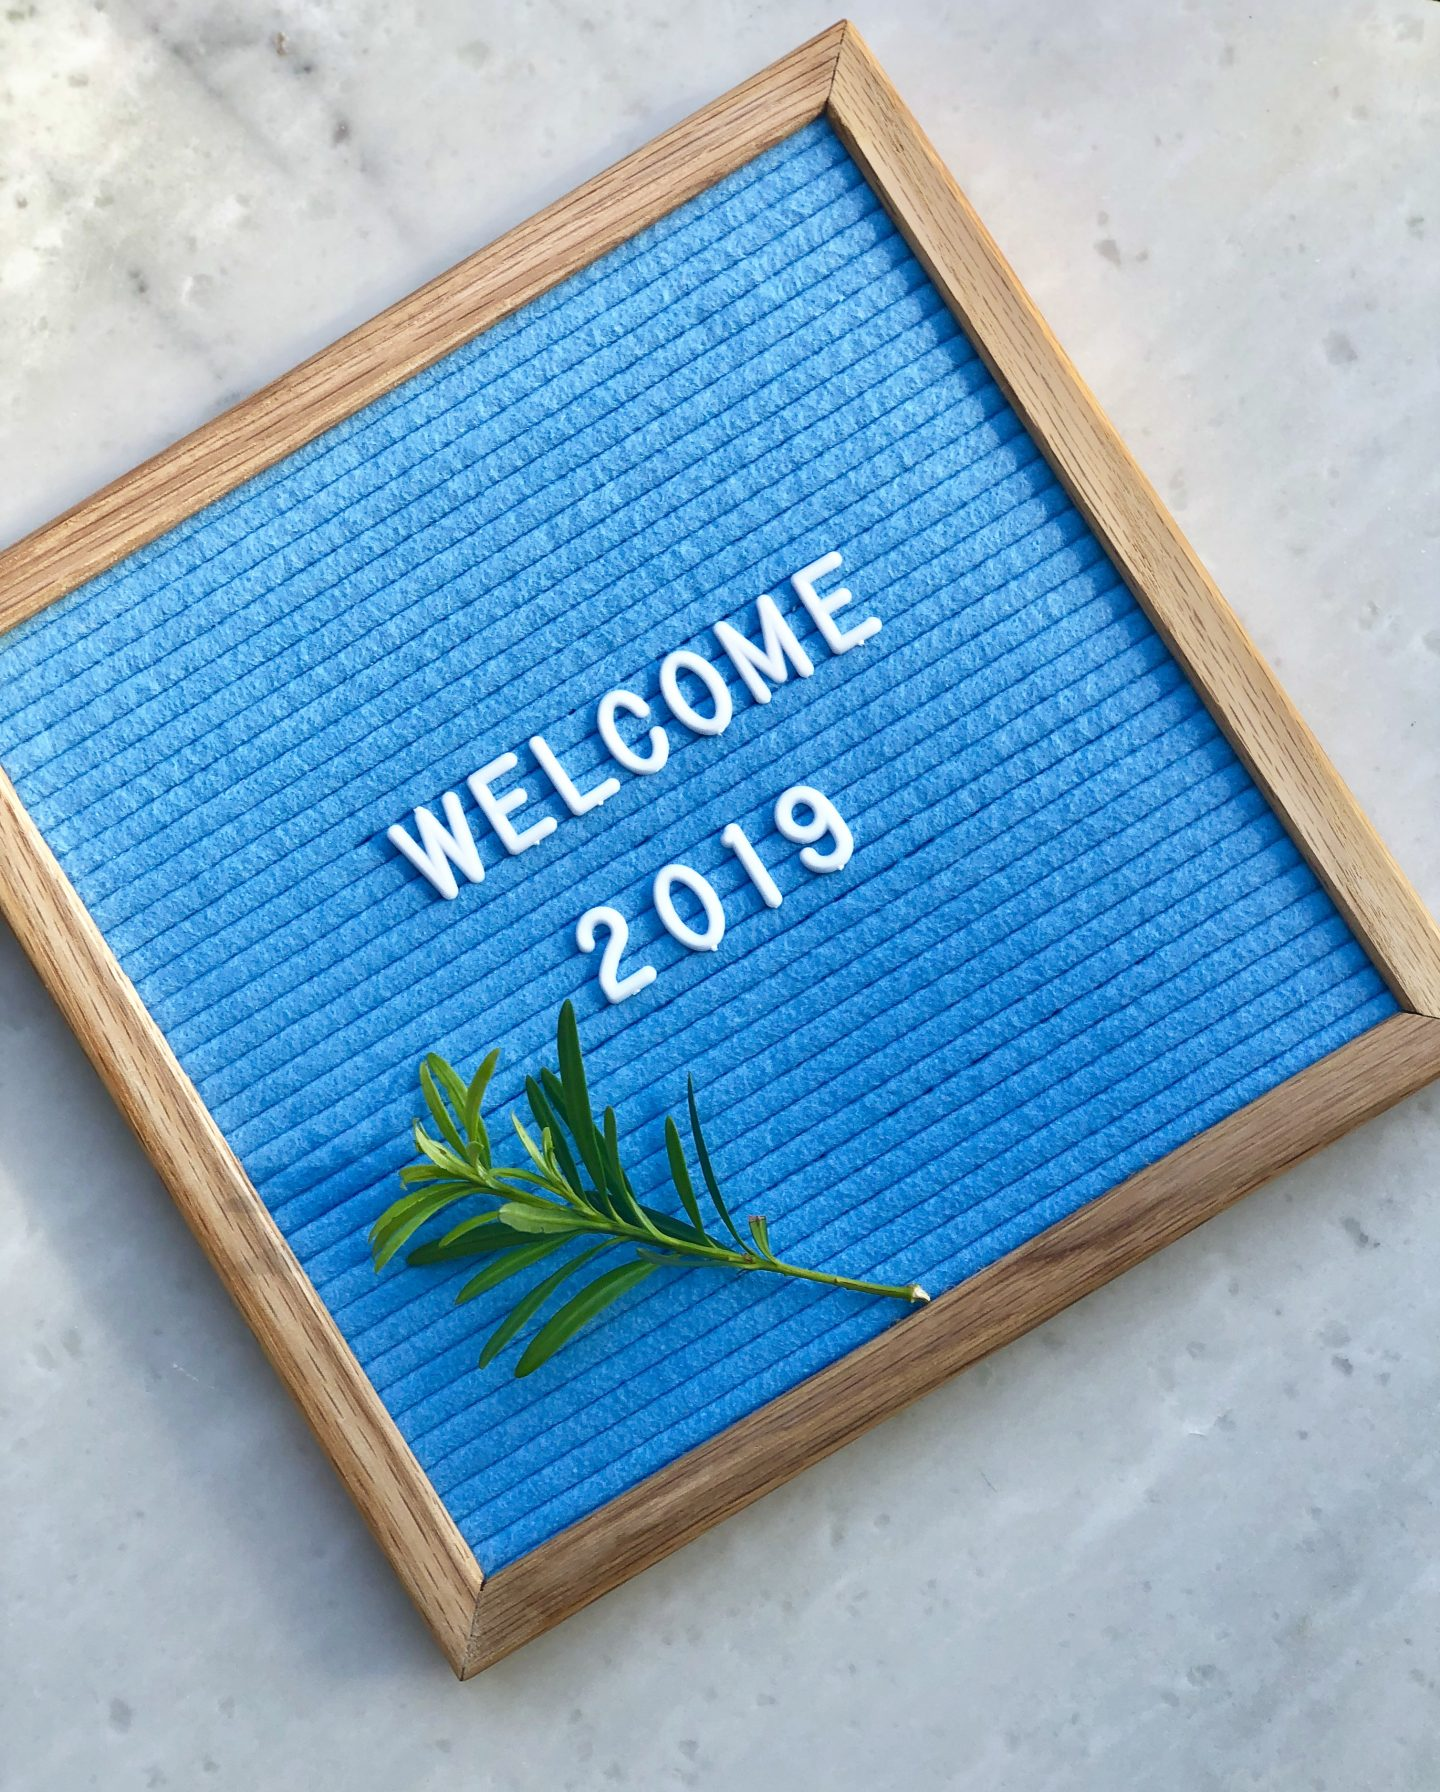 Welcome 2019 on letter board